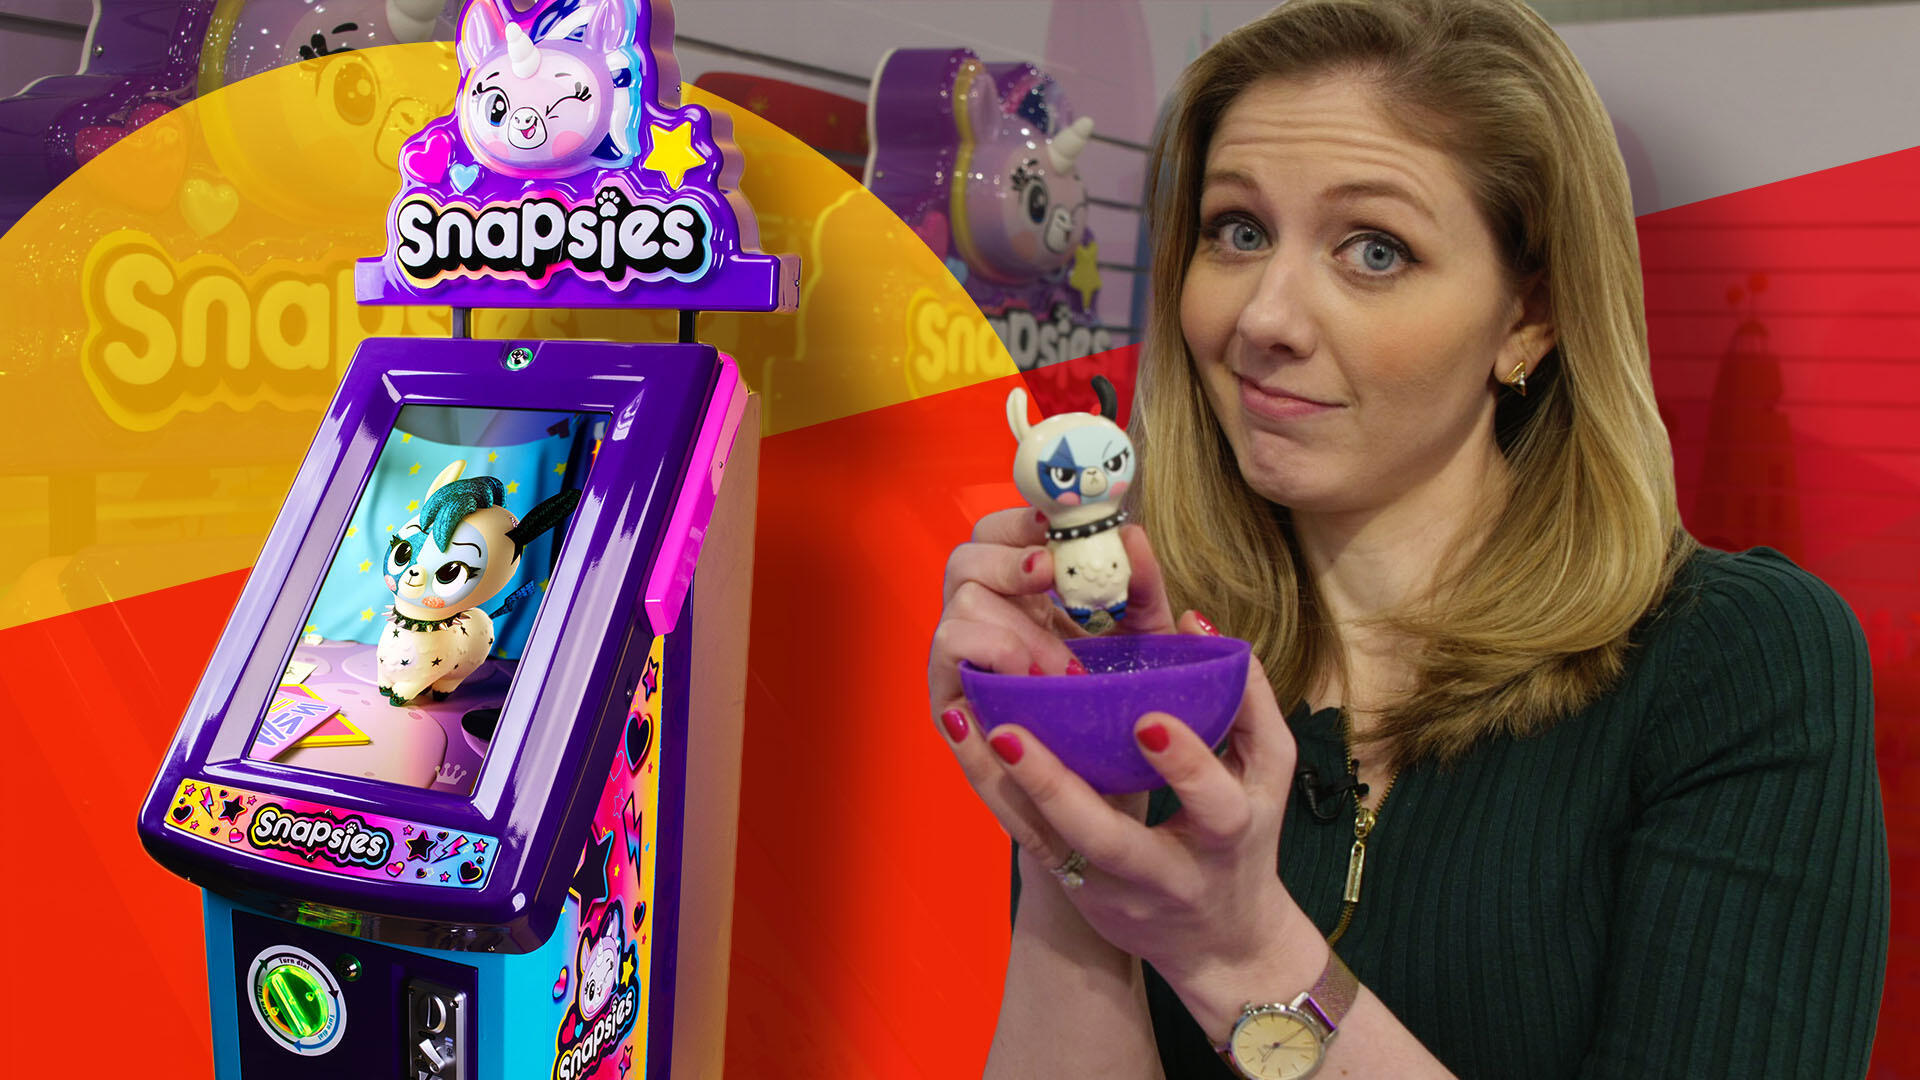 Video: Funko's toy vending machines put a new a twist on shopping